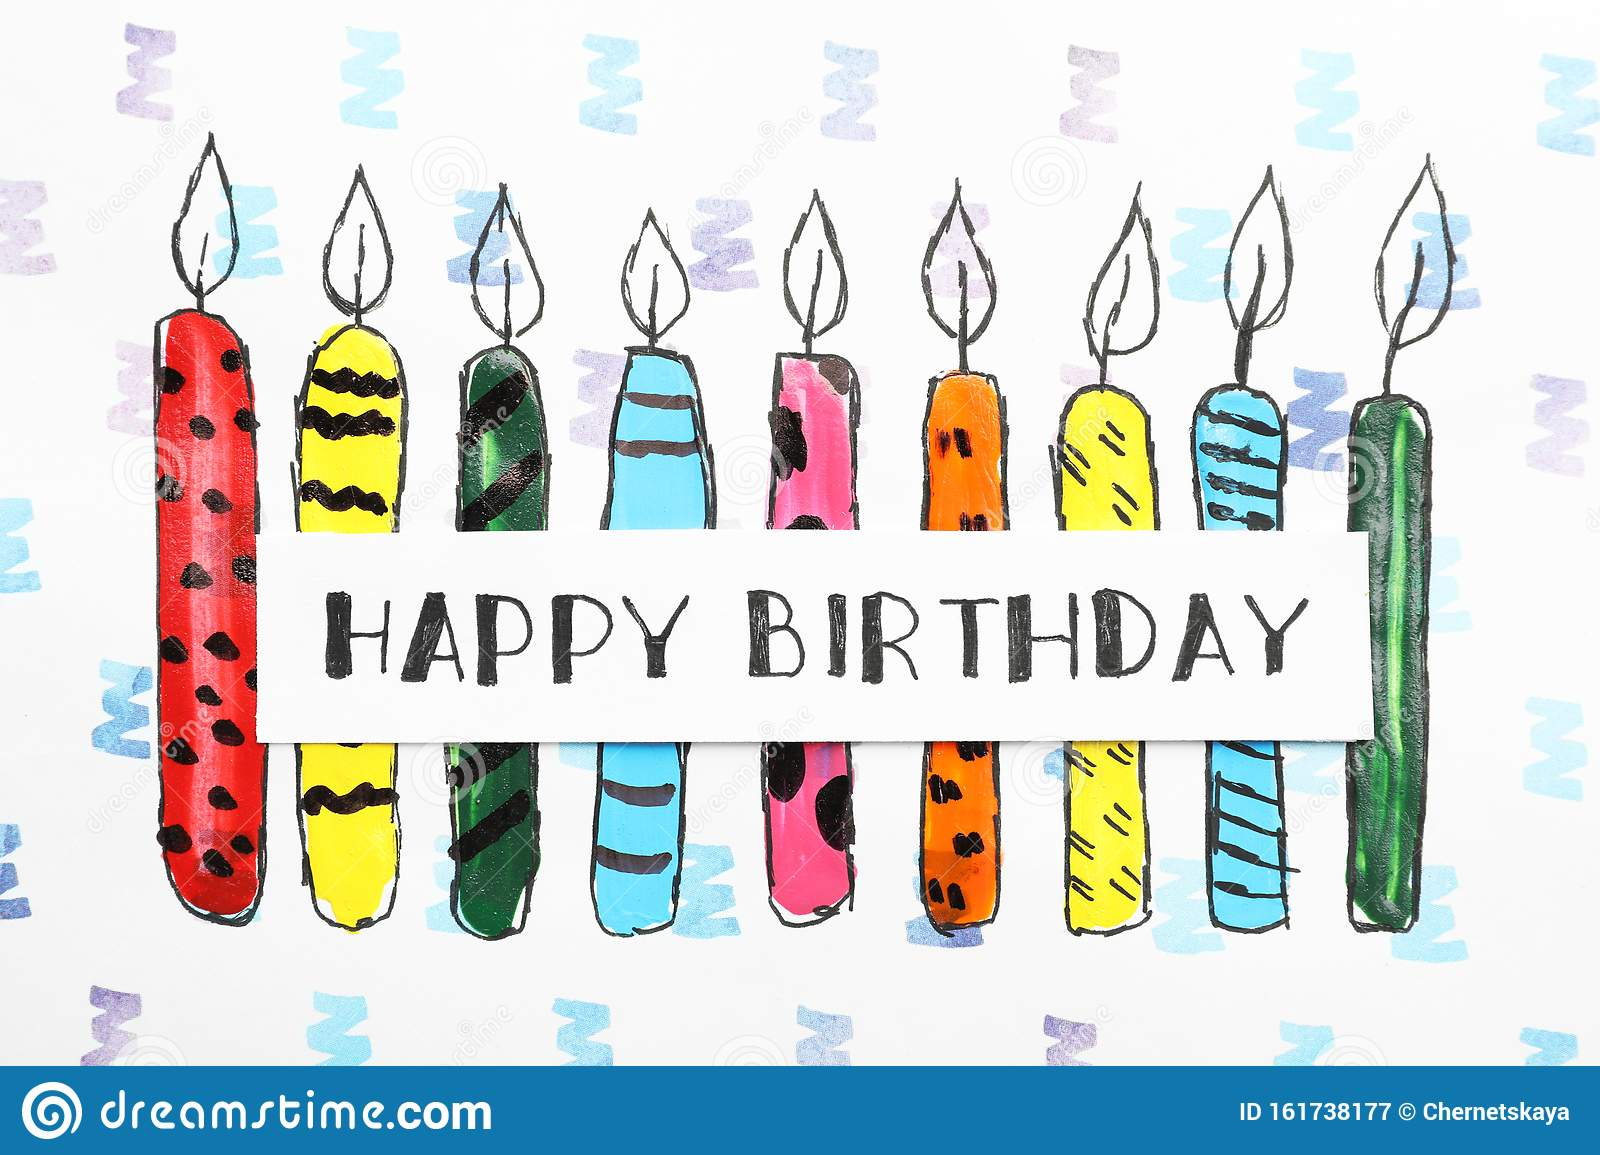 Card with words HAPPY BIRTHDAY and colorful drawn candles on paper sheet